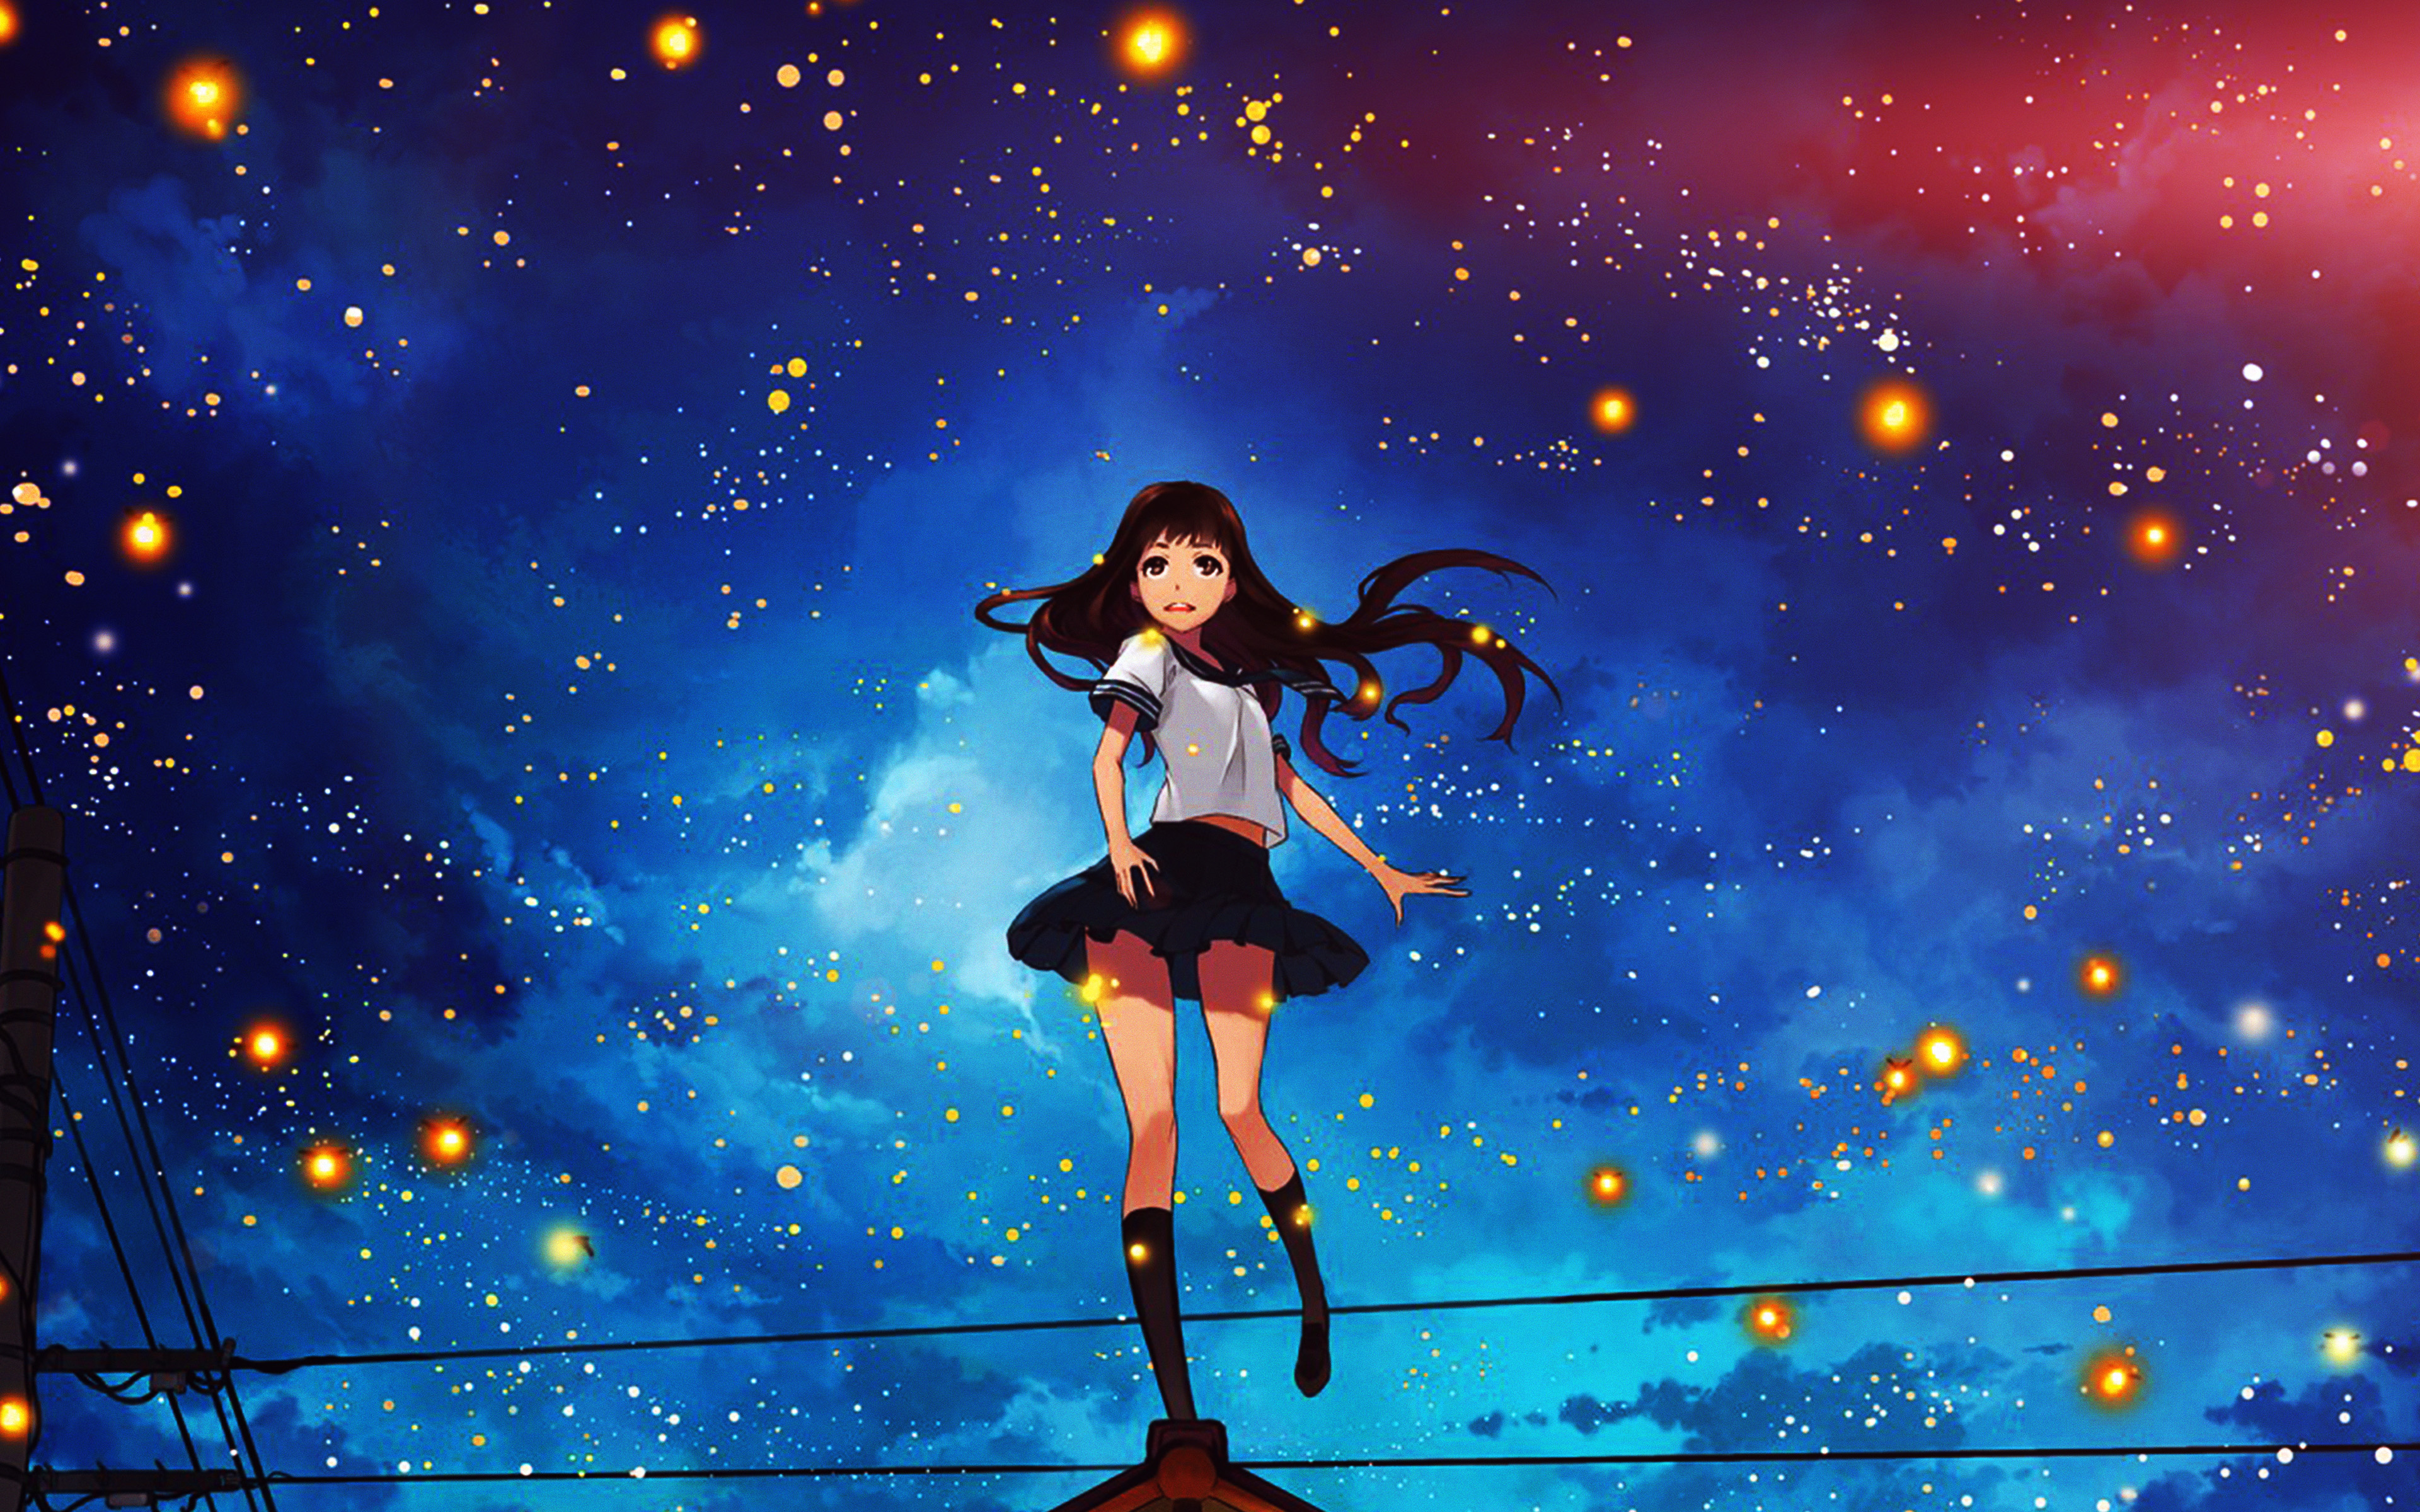 au47-girl-anime-star-space-night-illustration-art-flare ...